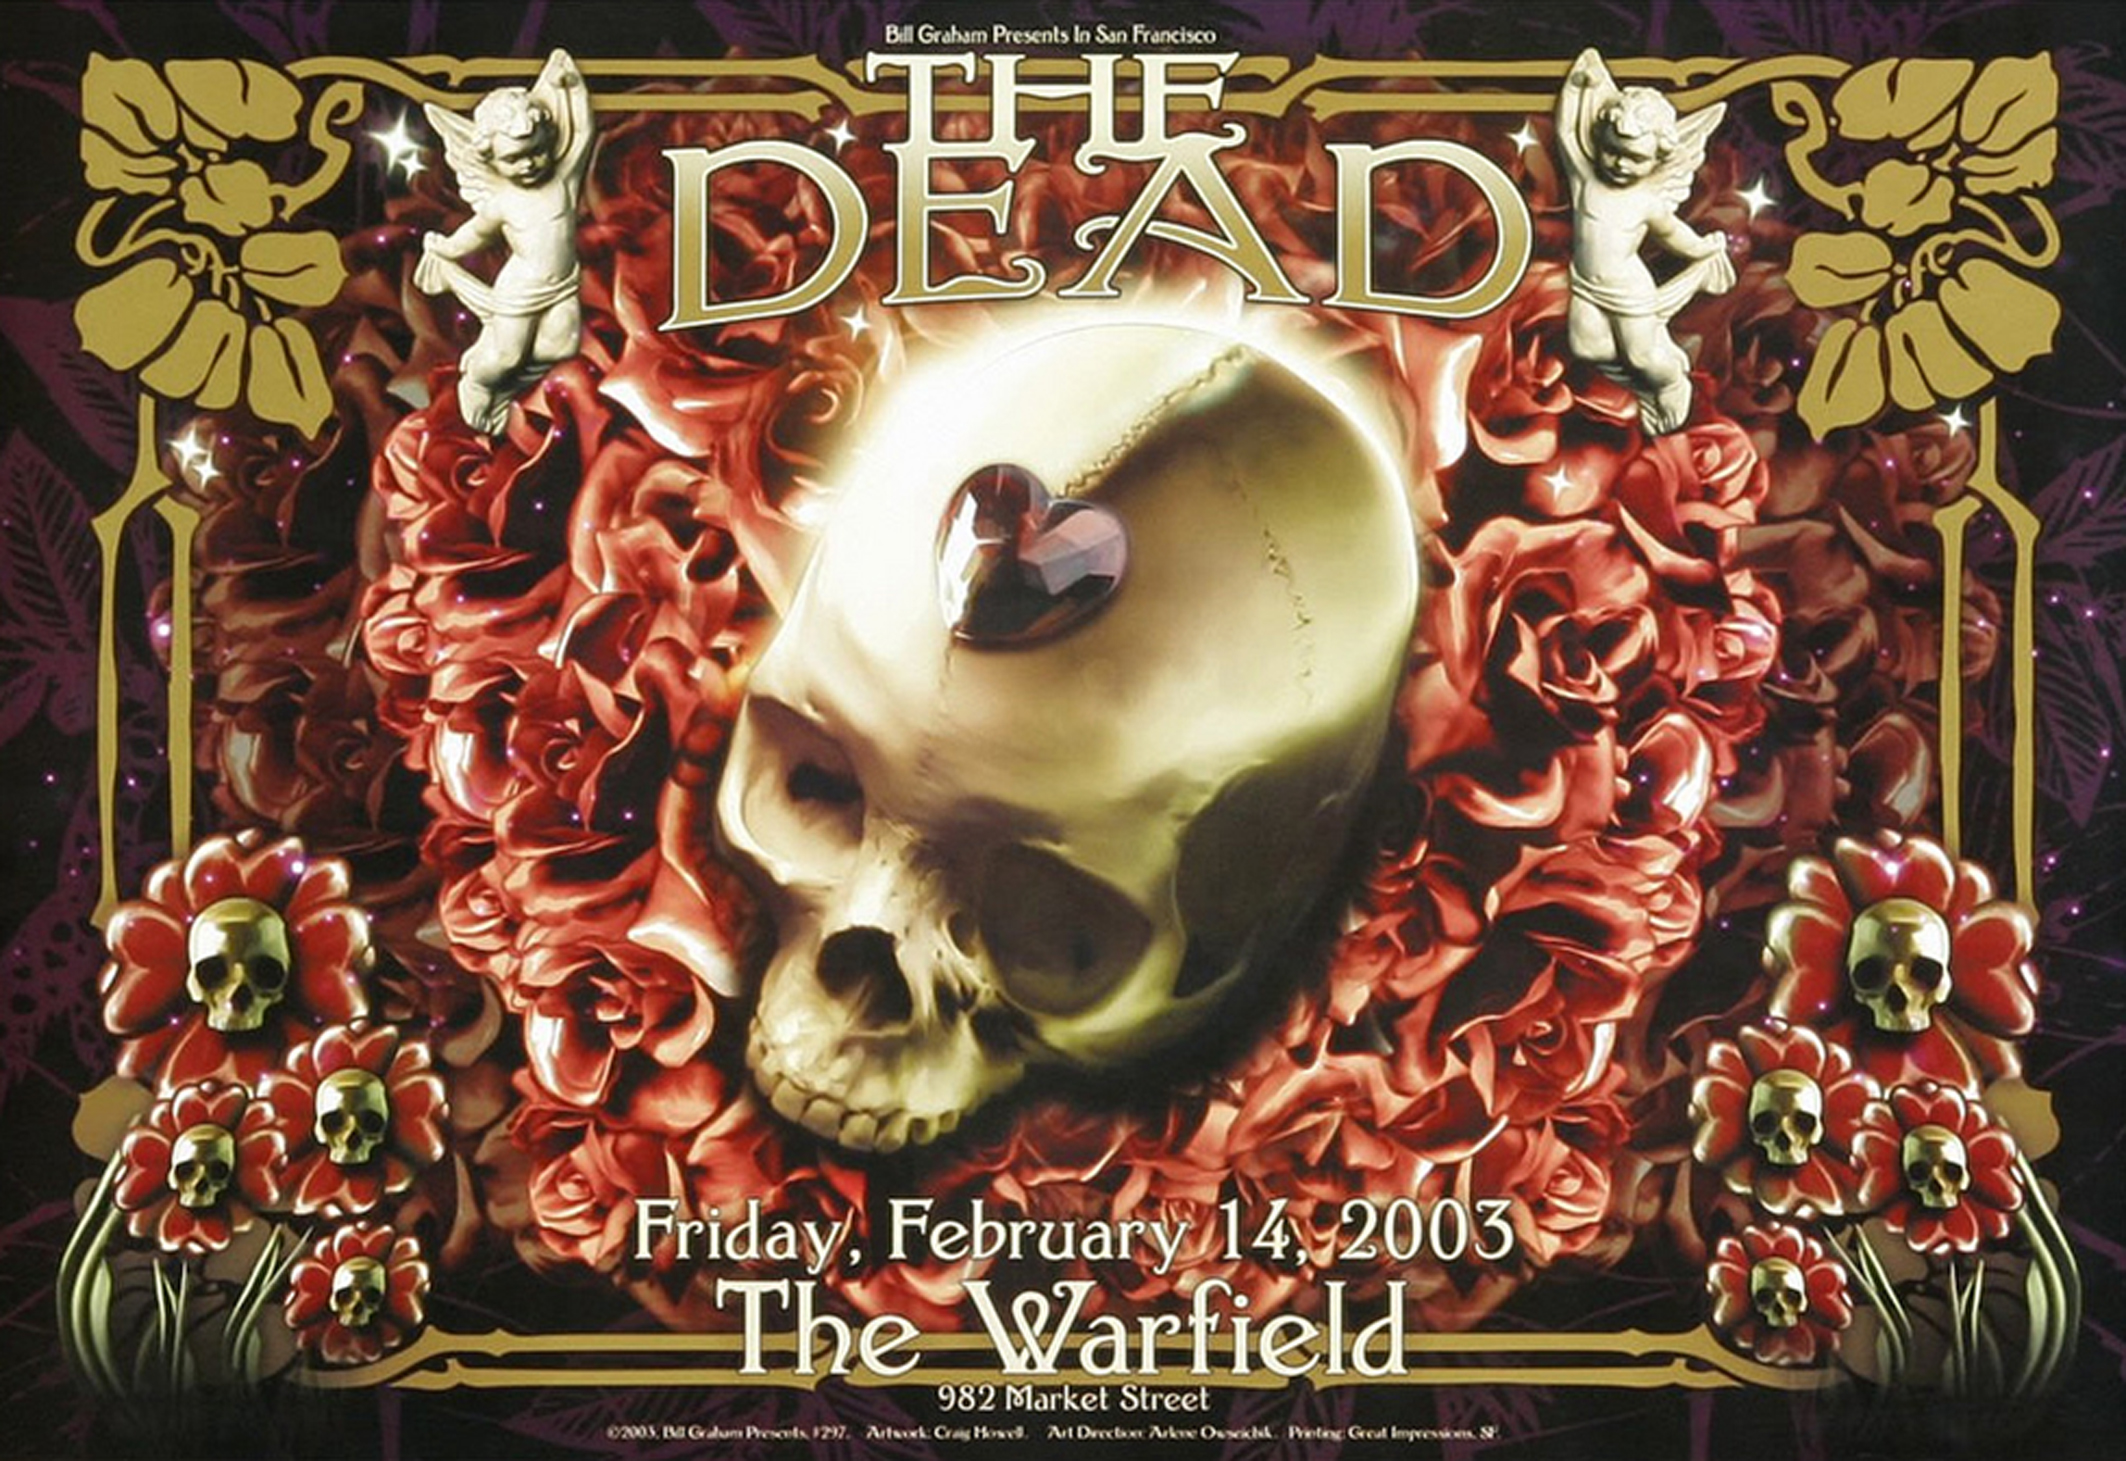 Dead Concert Poster The Warfield 2003